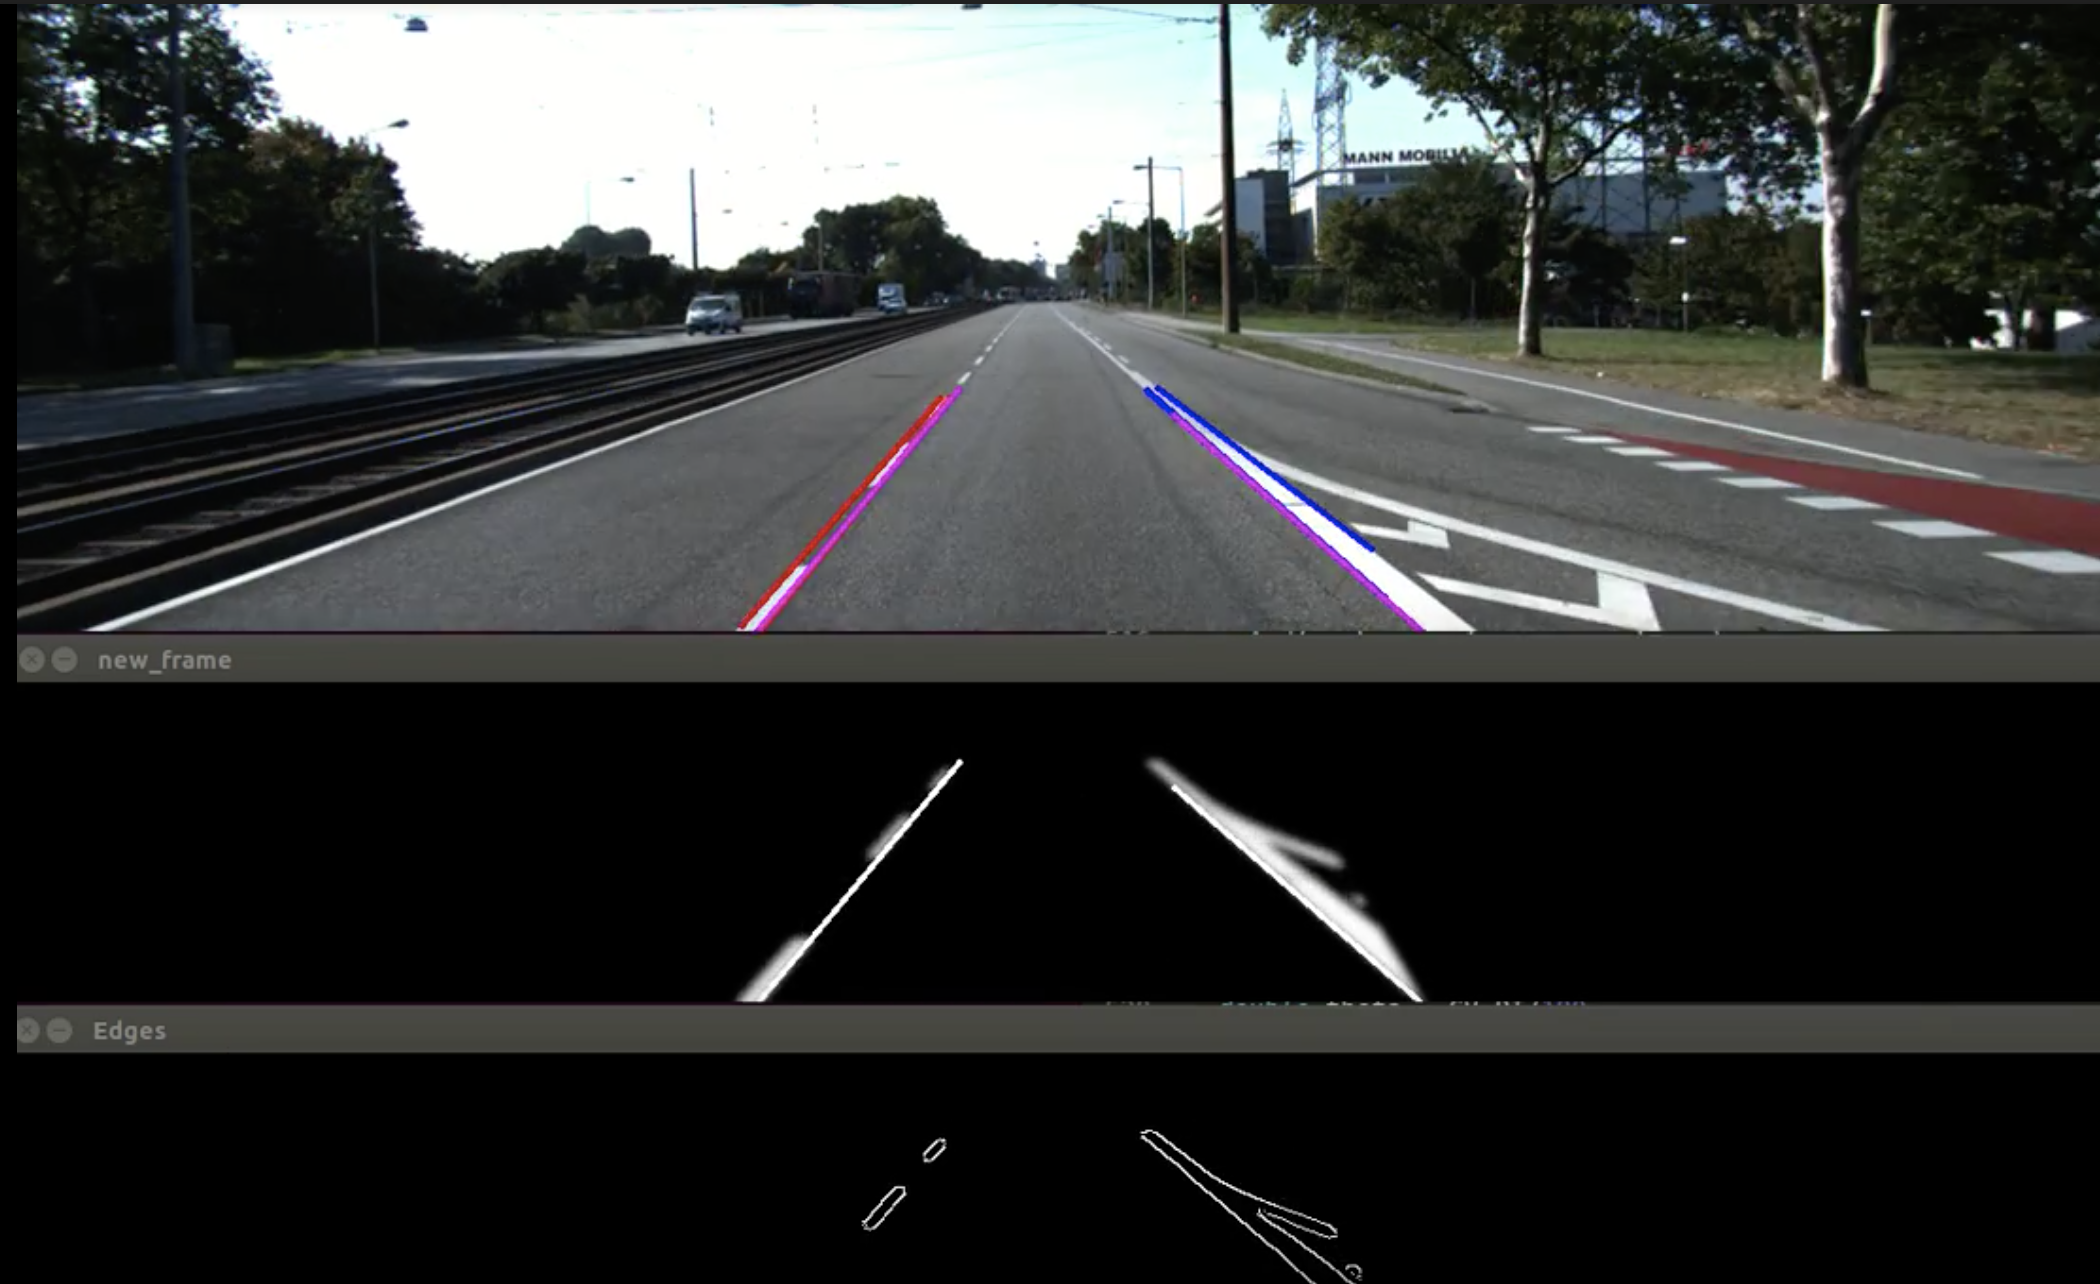 Cameras beings used to detect lanes